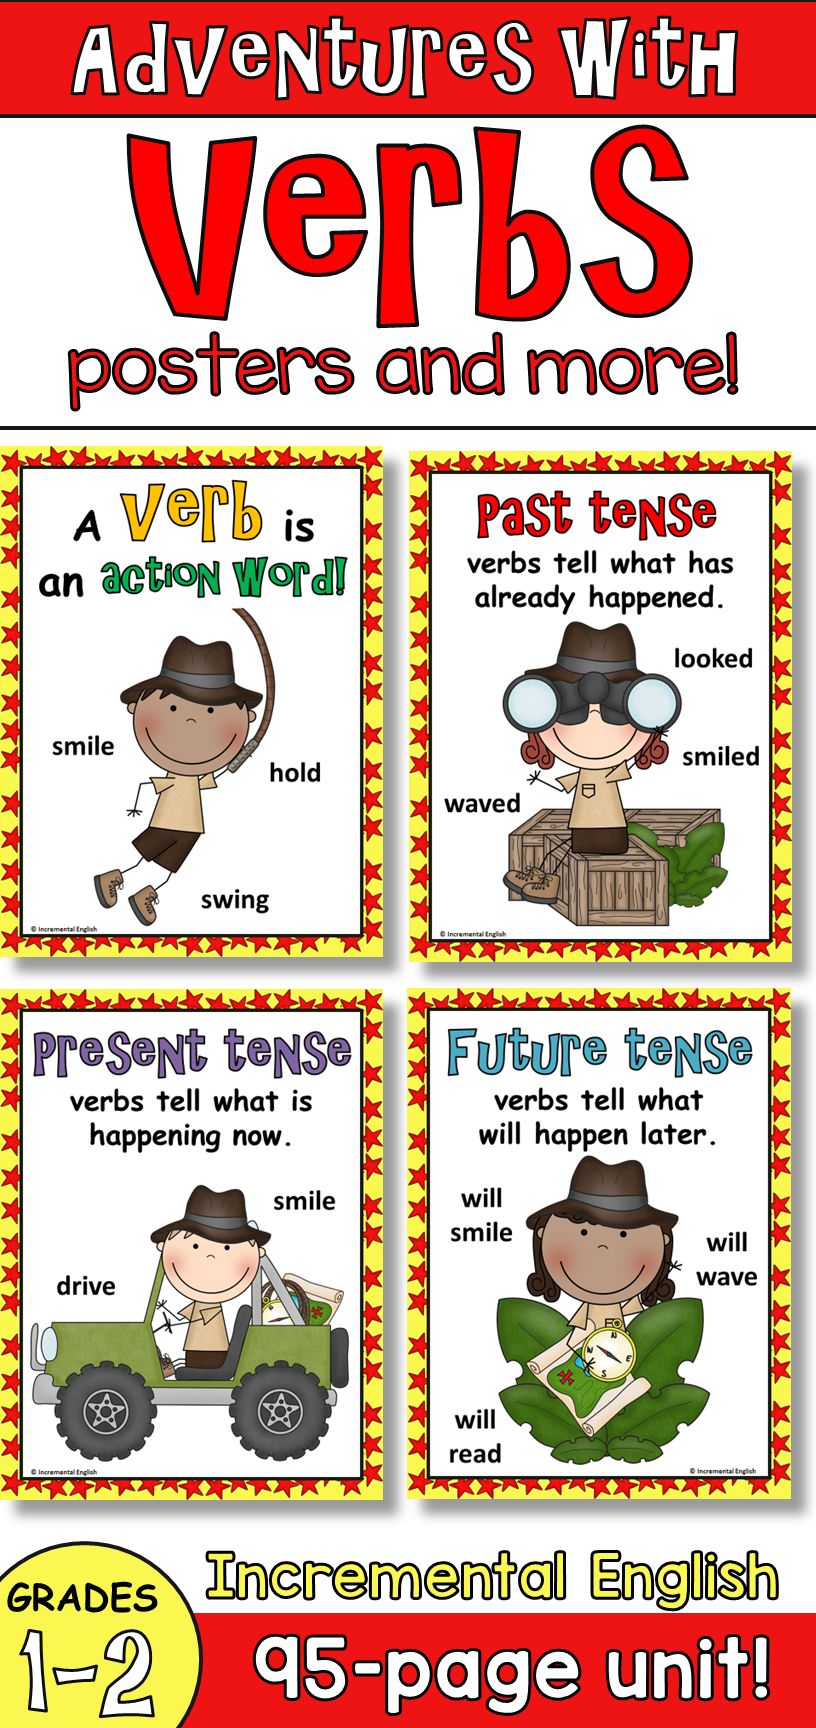 Action Verbs And Verb Tenses Unit Adventures With Verbs Verbs Poster Irregular Verb Anchor Chart Anchor Charts [ 1728 x 816 Pixel ]